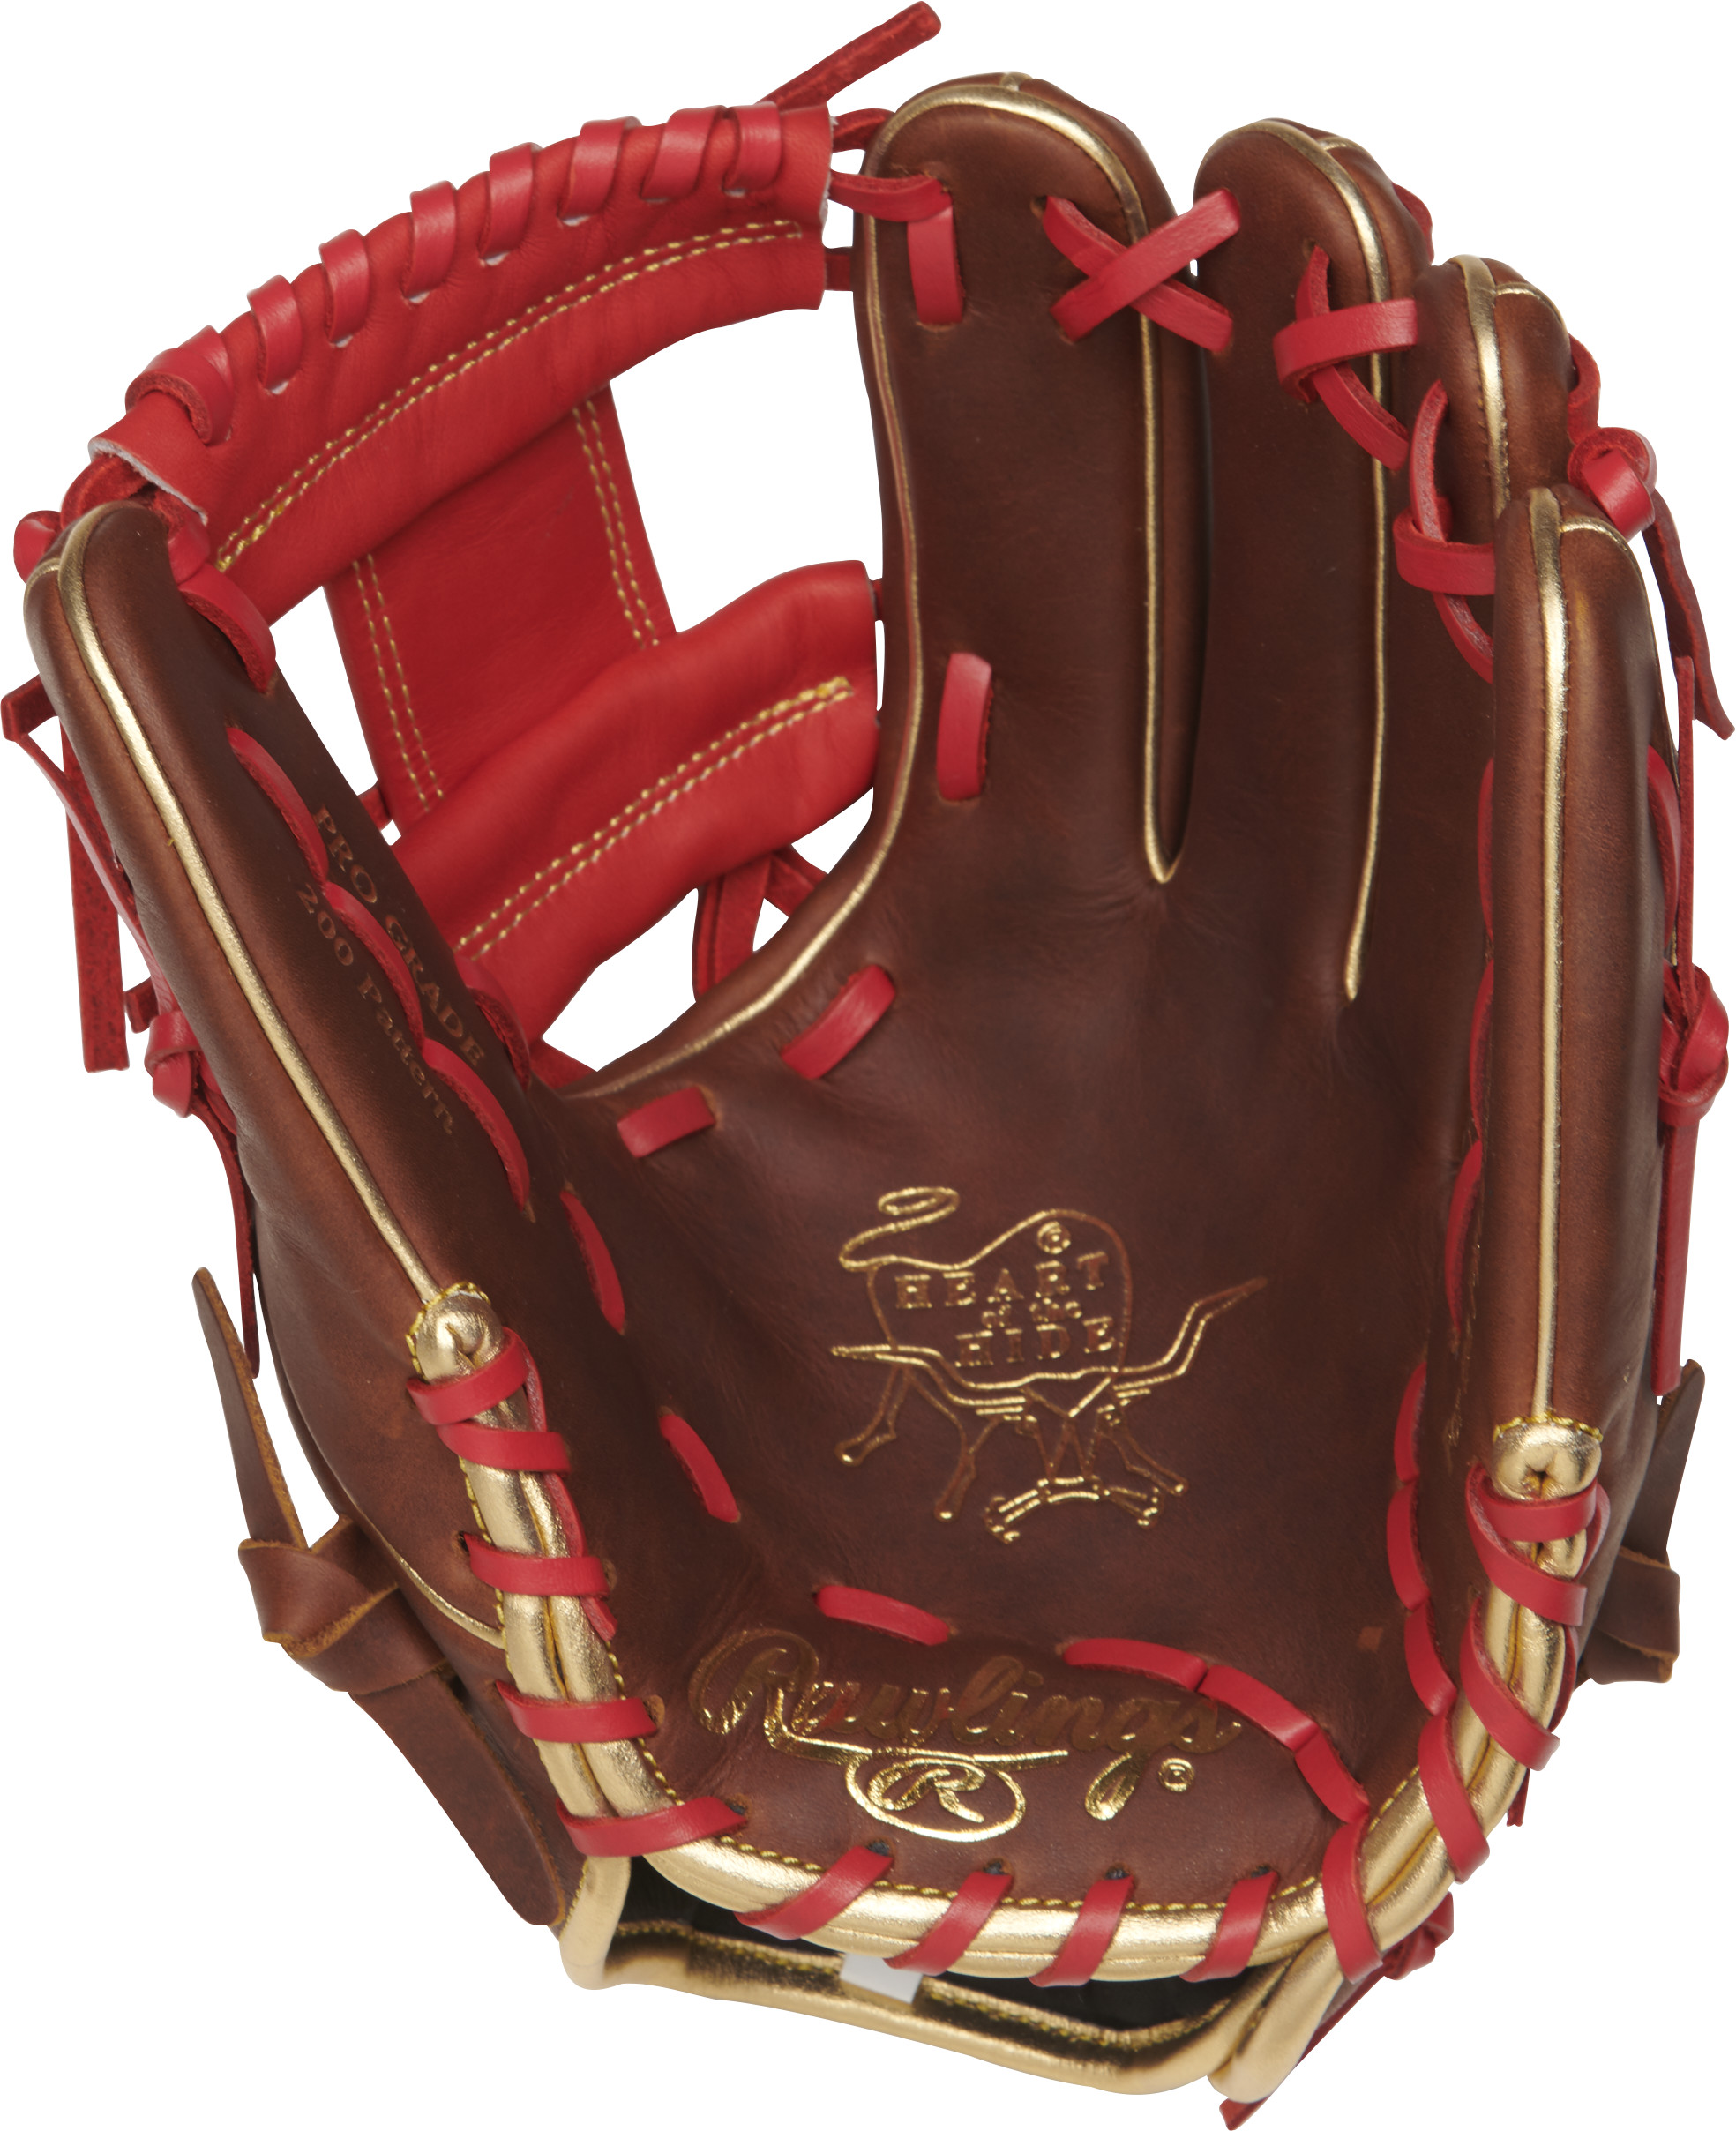 http://www.bestbatdeals.com/images/gloves/rawlings/PRO204-2TIG-1.jpg